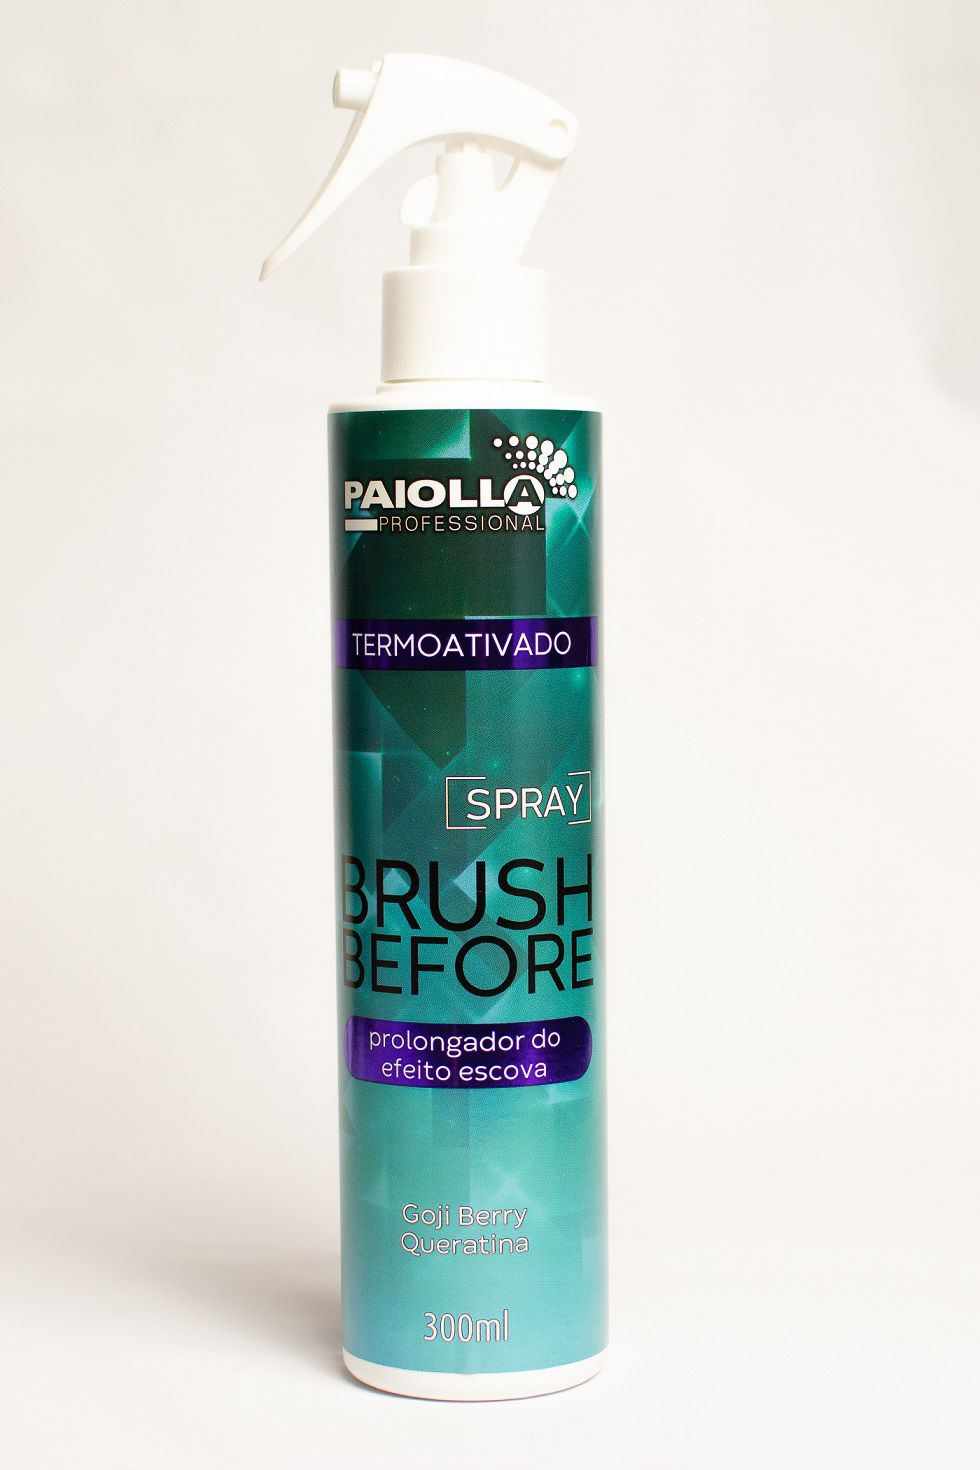 Brush Before - Spray Termo Ativado - 300ml